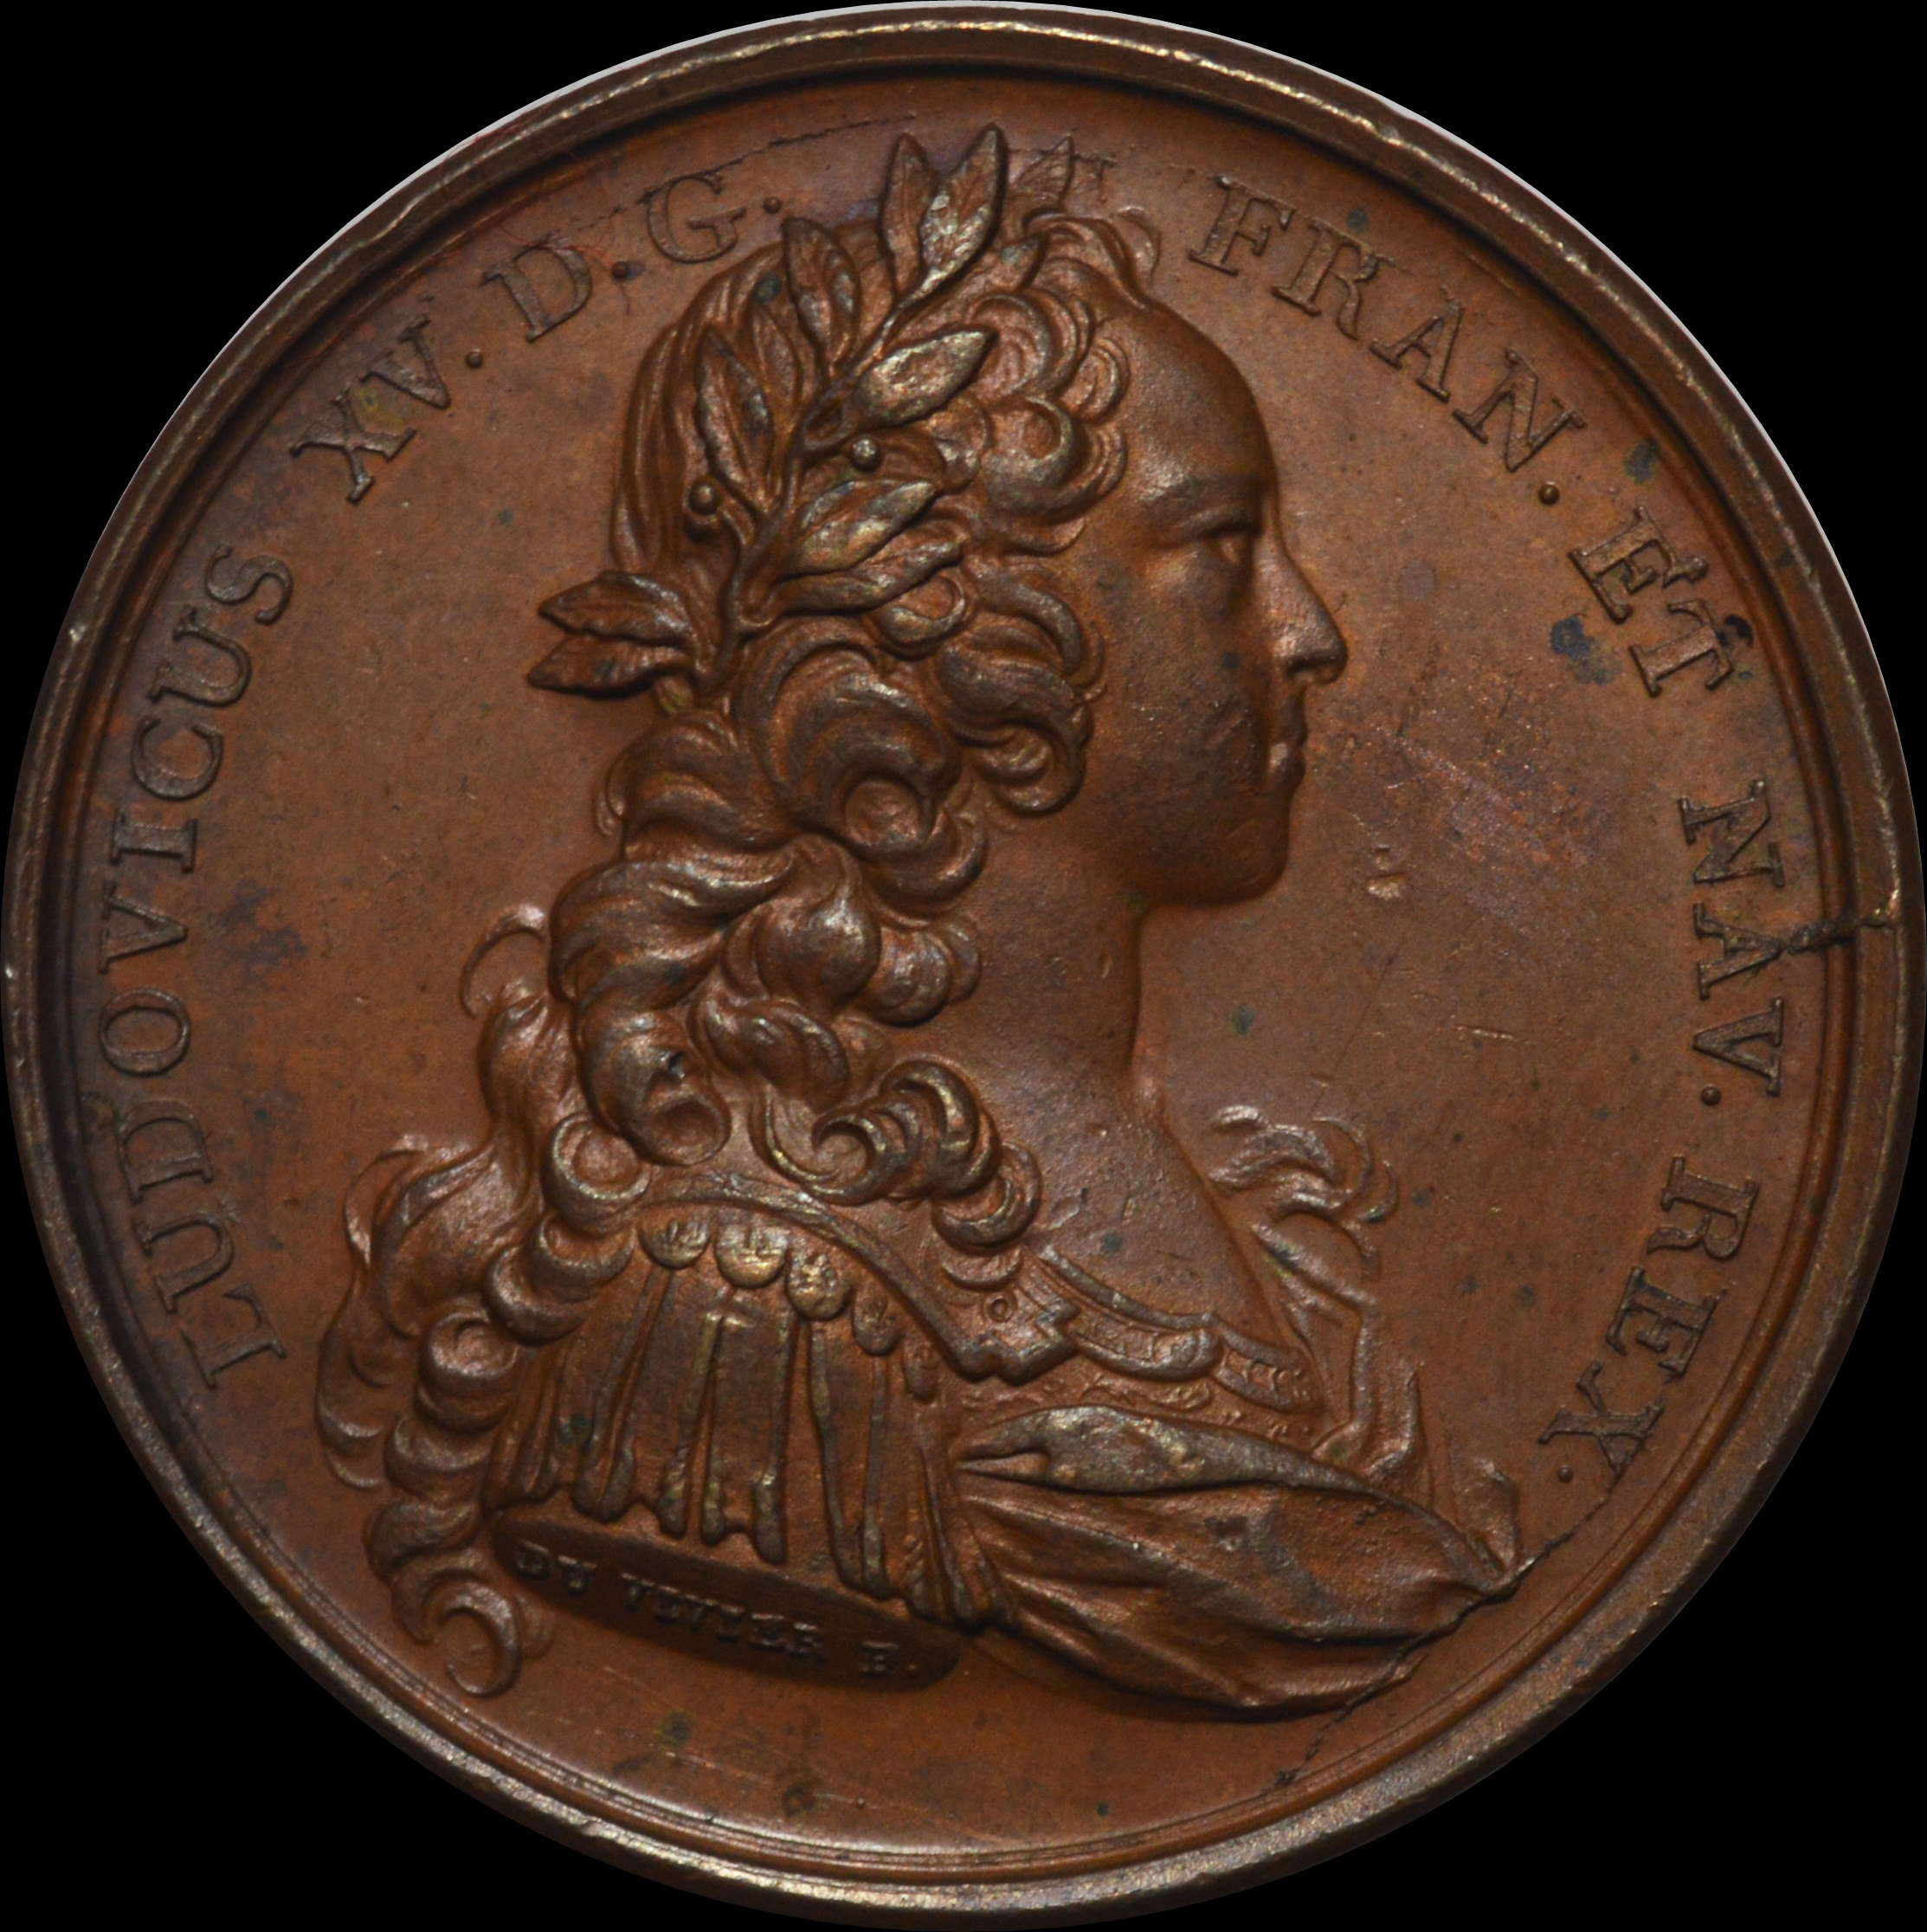 Louis XV - 1723 Majority of the King medal by Duvivier